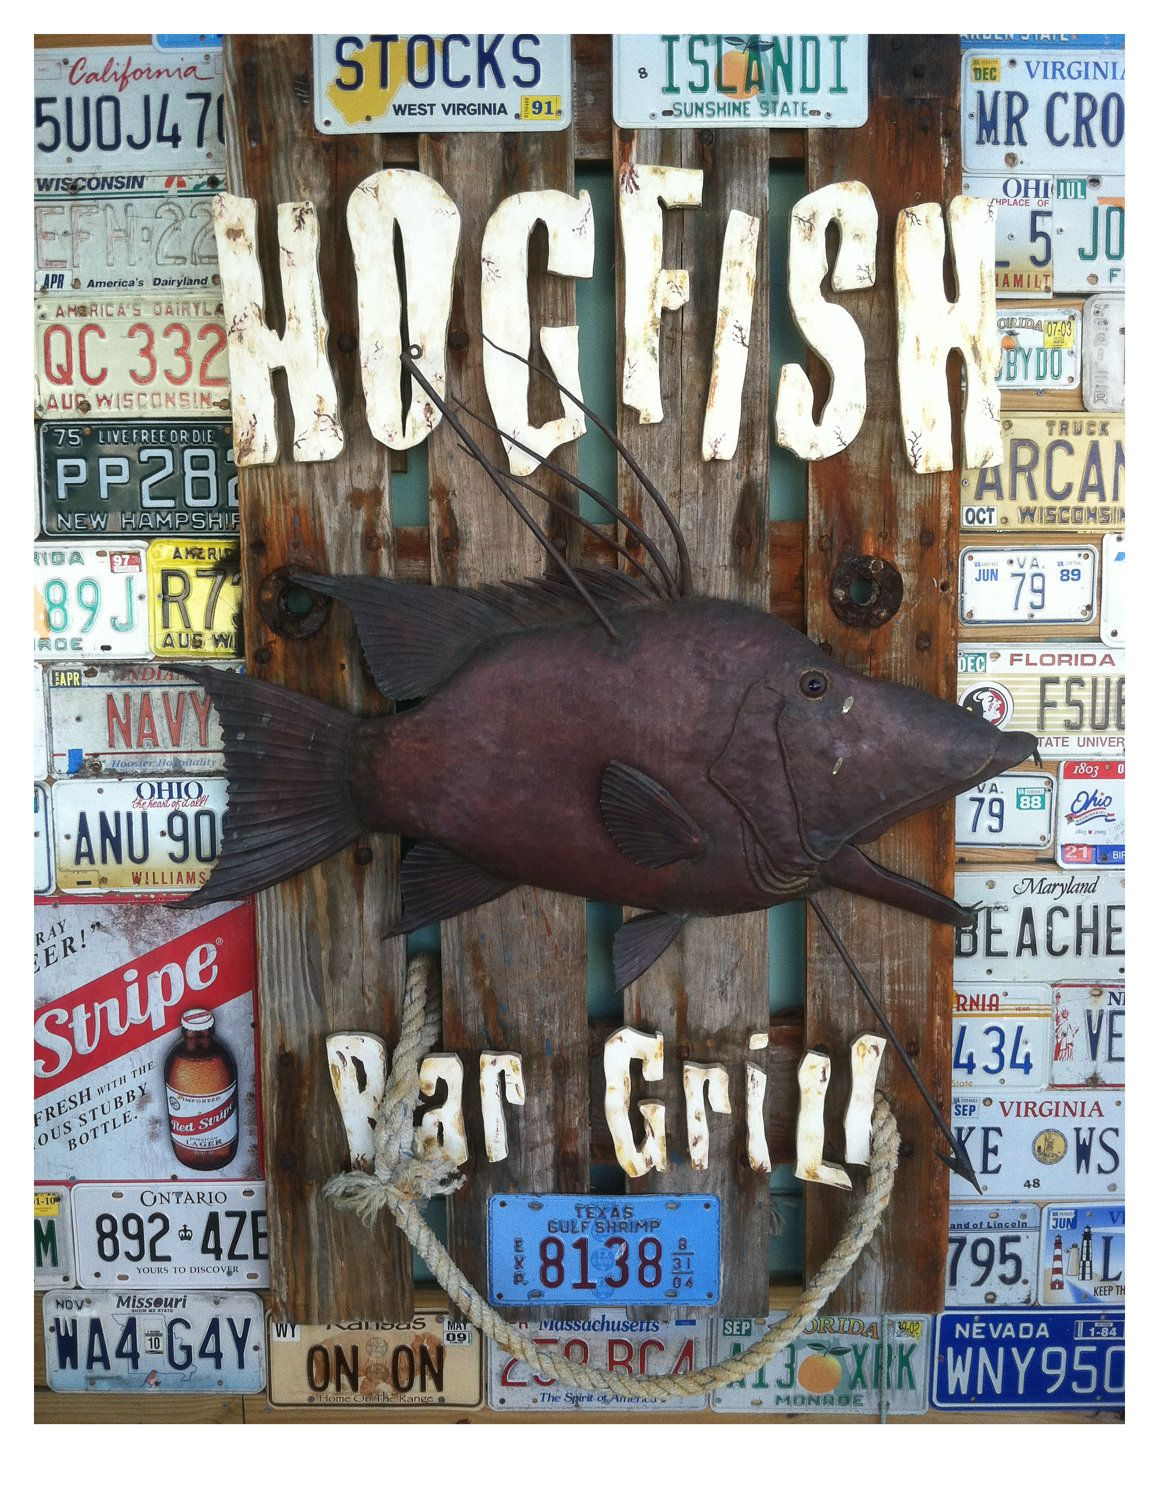 Hogfish Bar & Grill, Stock Island, FL..our Family Fav. Bar